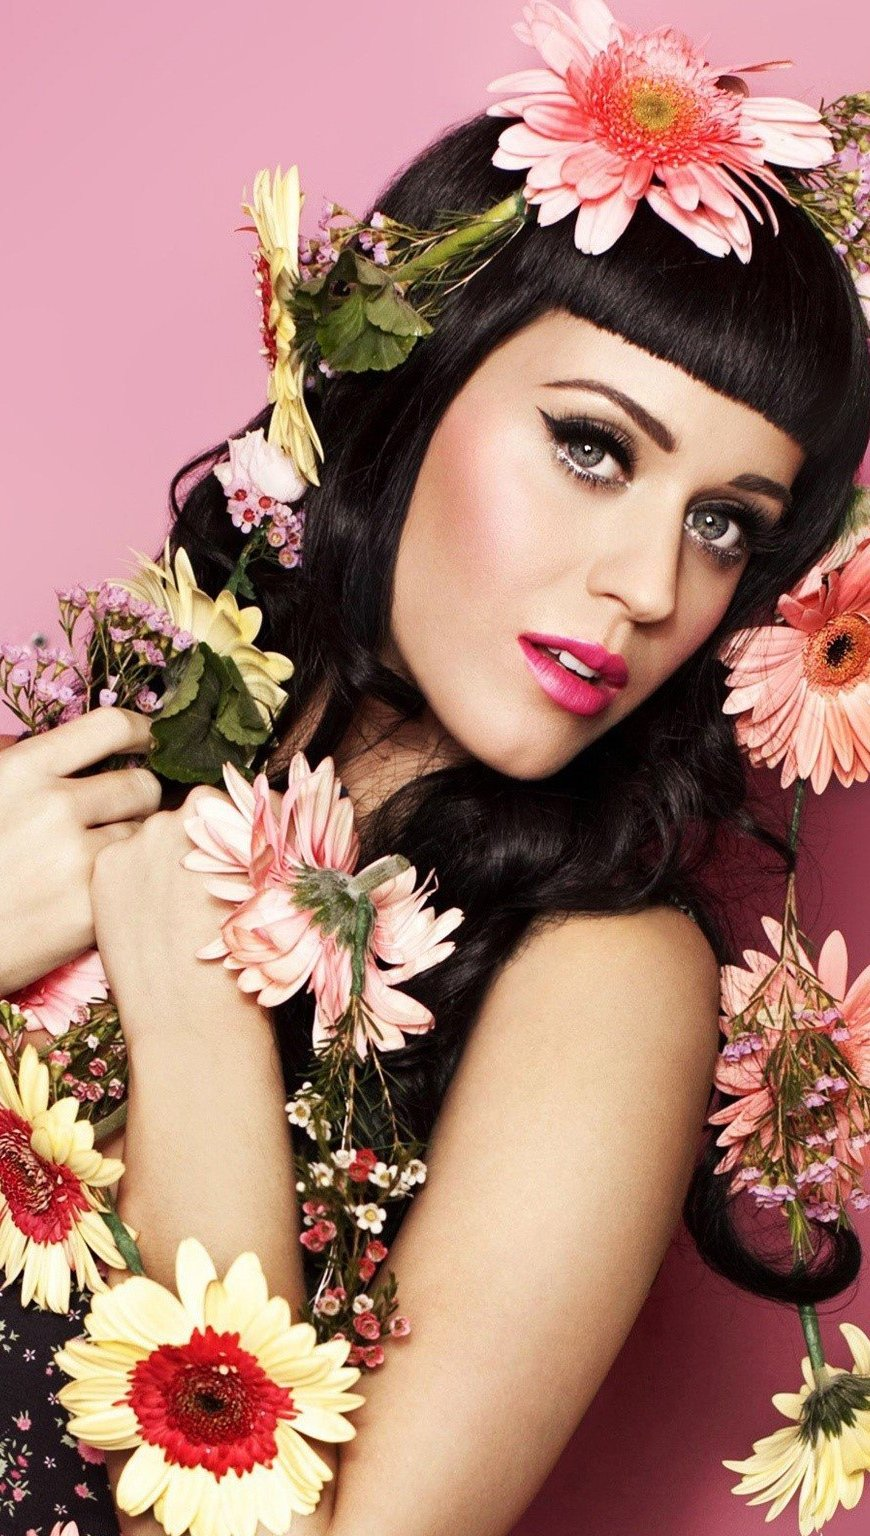 Wallpaper Katy Perry Vertical